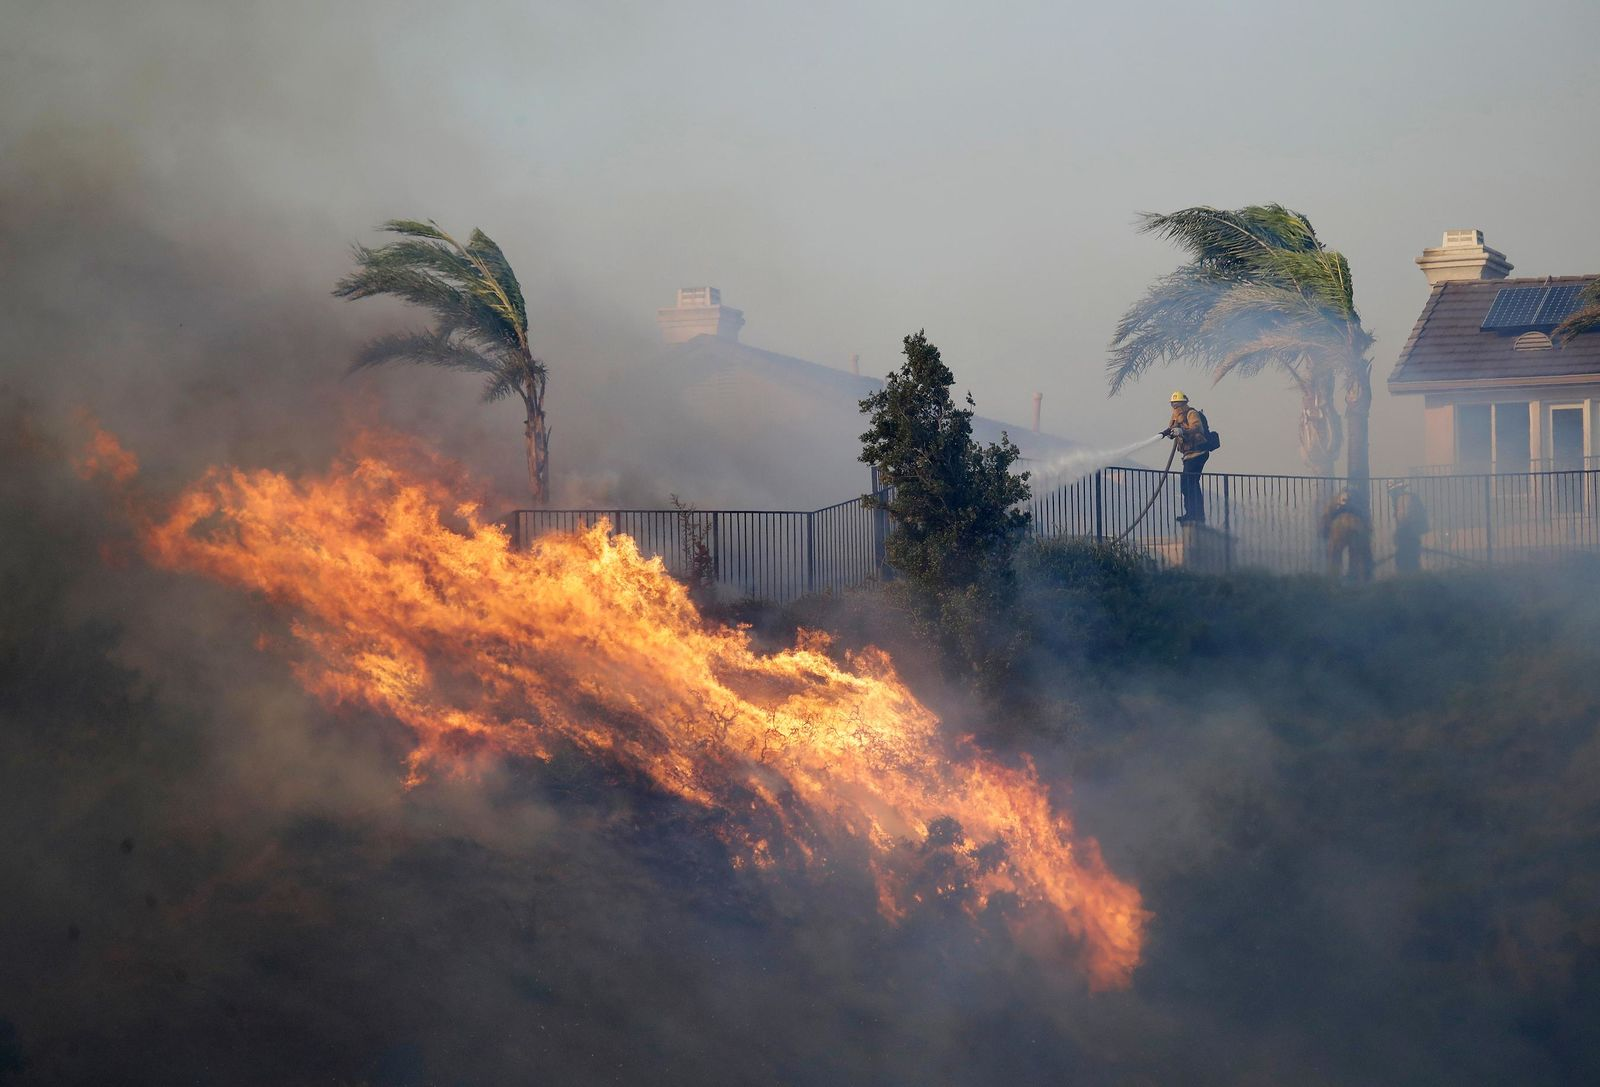 A firefighter sprays water in front of an advancing wildfire Friday, Oct. 11, 2019, in Porter Ranch, Calif. (AP Photo/Marcio Jose Sanchez)